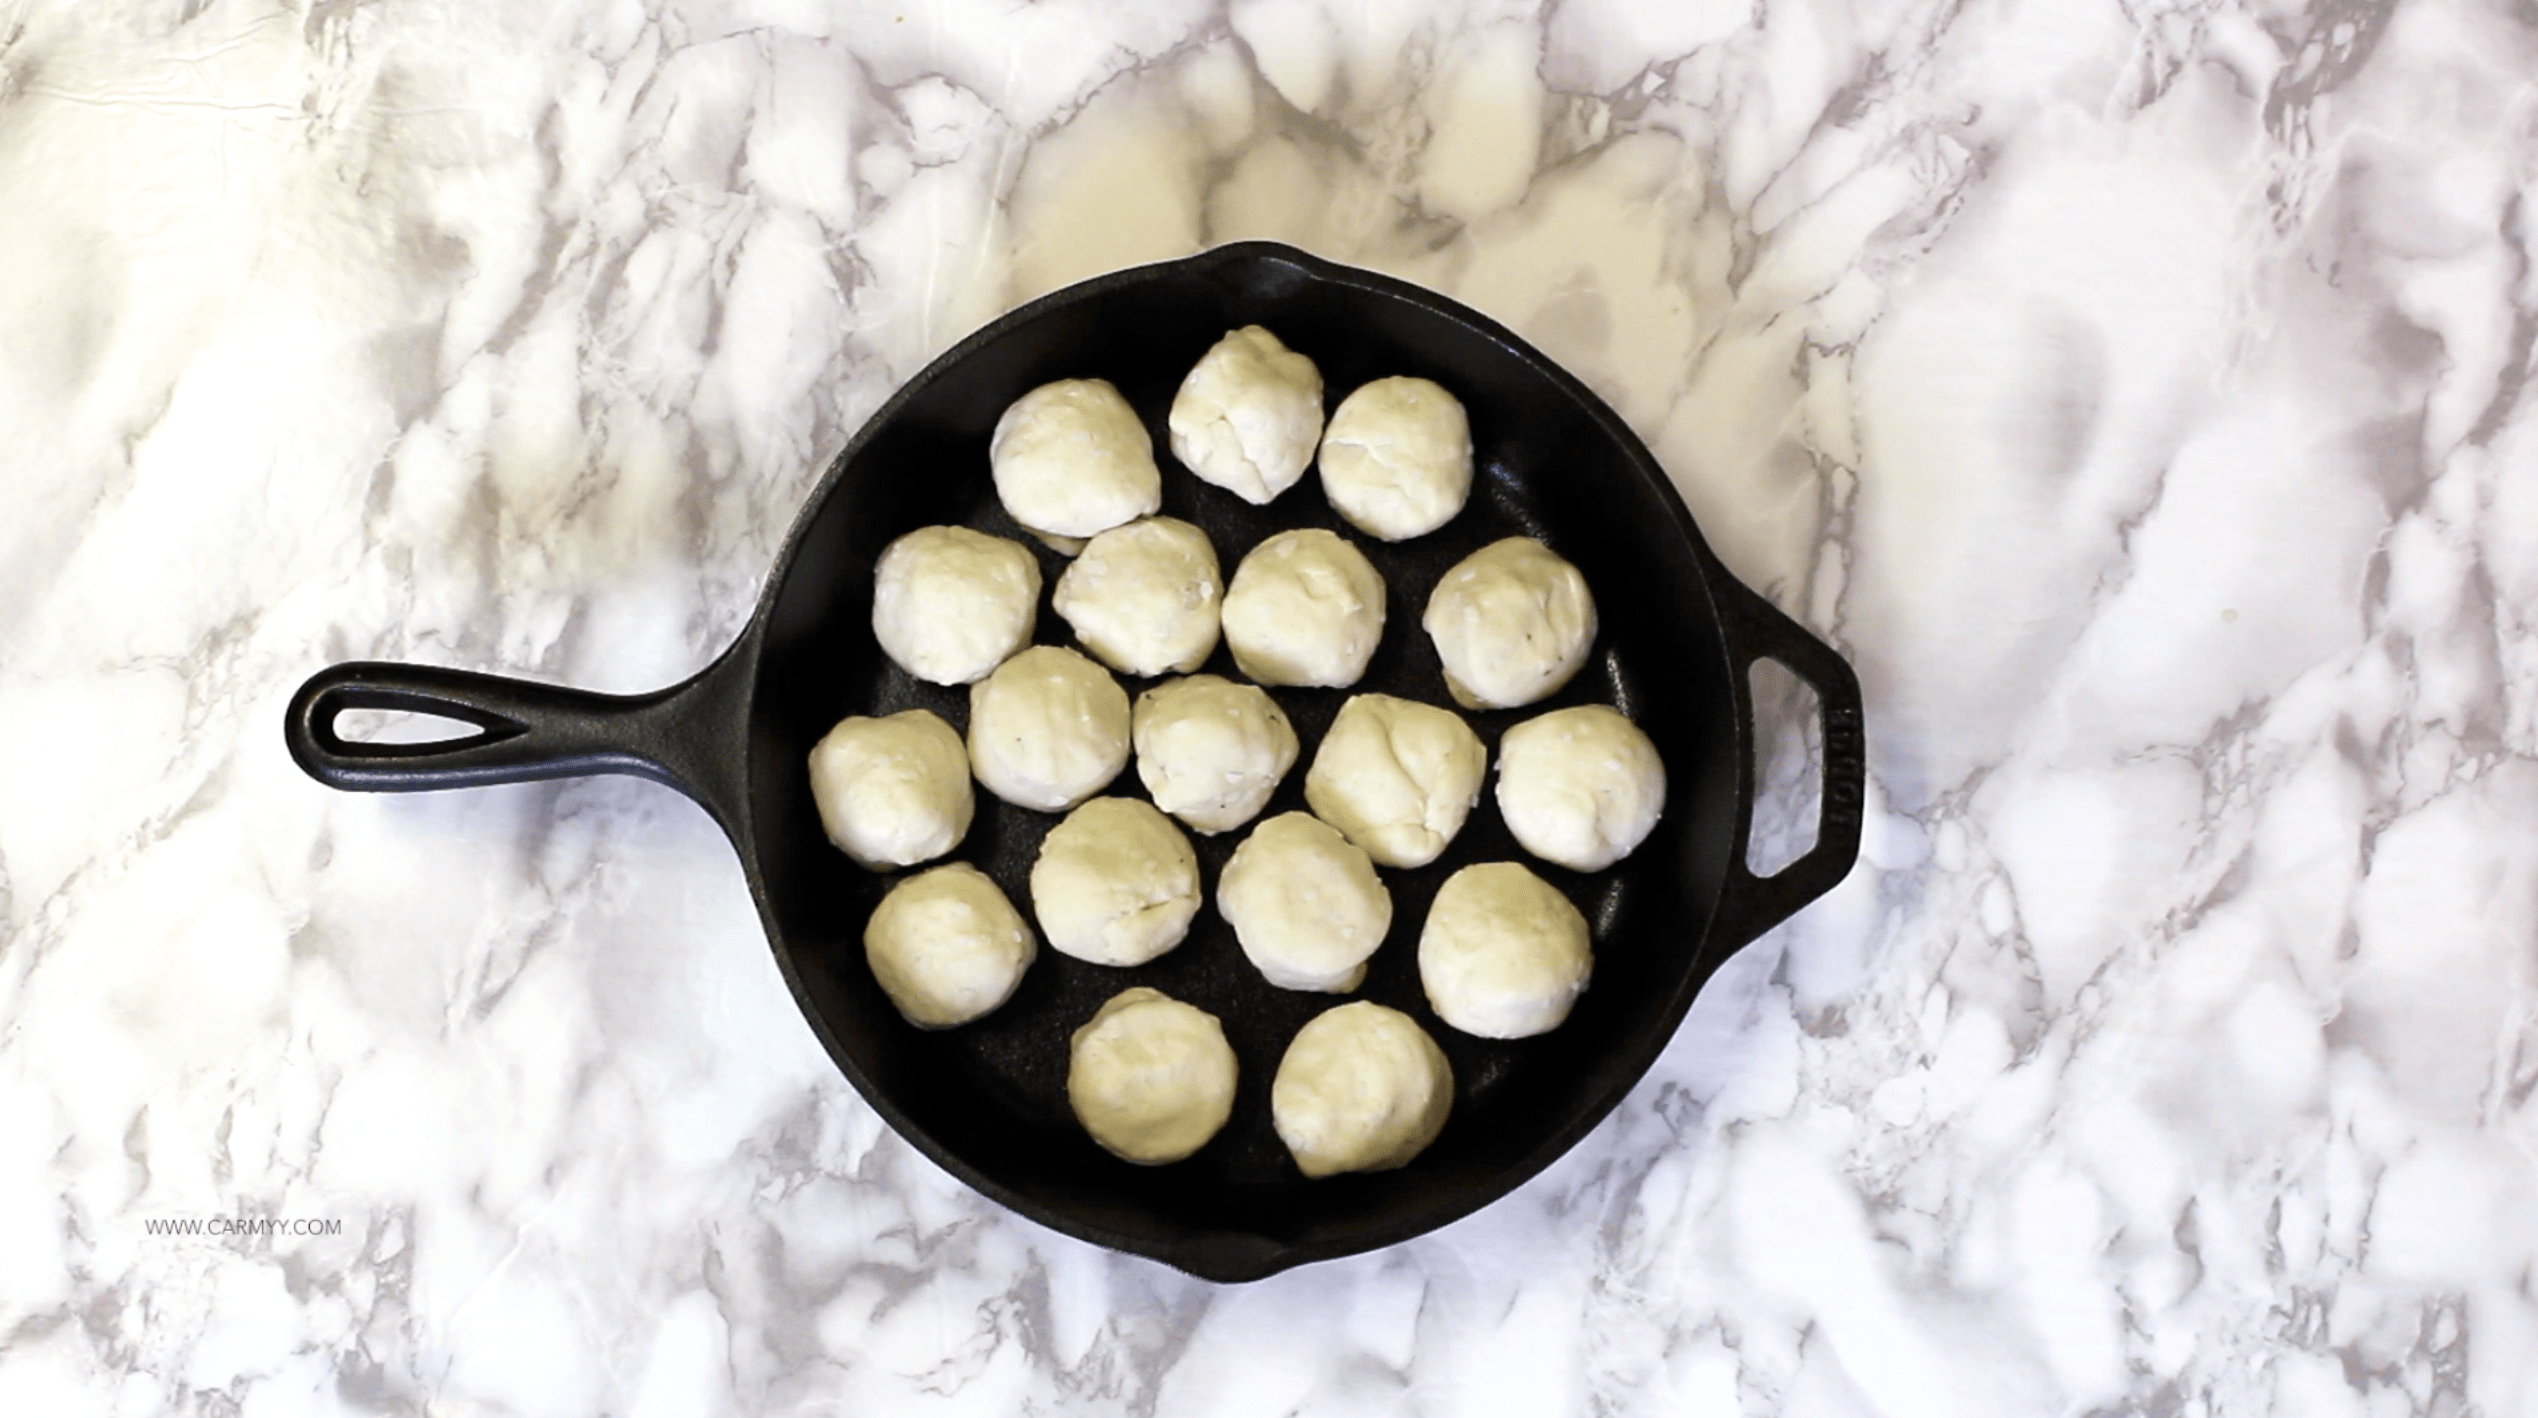 Pizza Balls/Pull Apart Bread in a Skillet